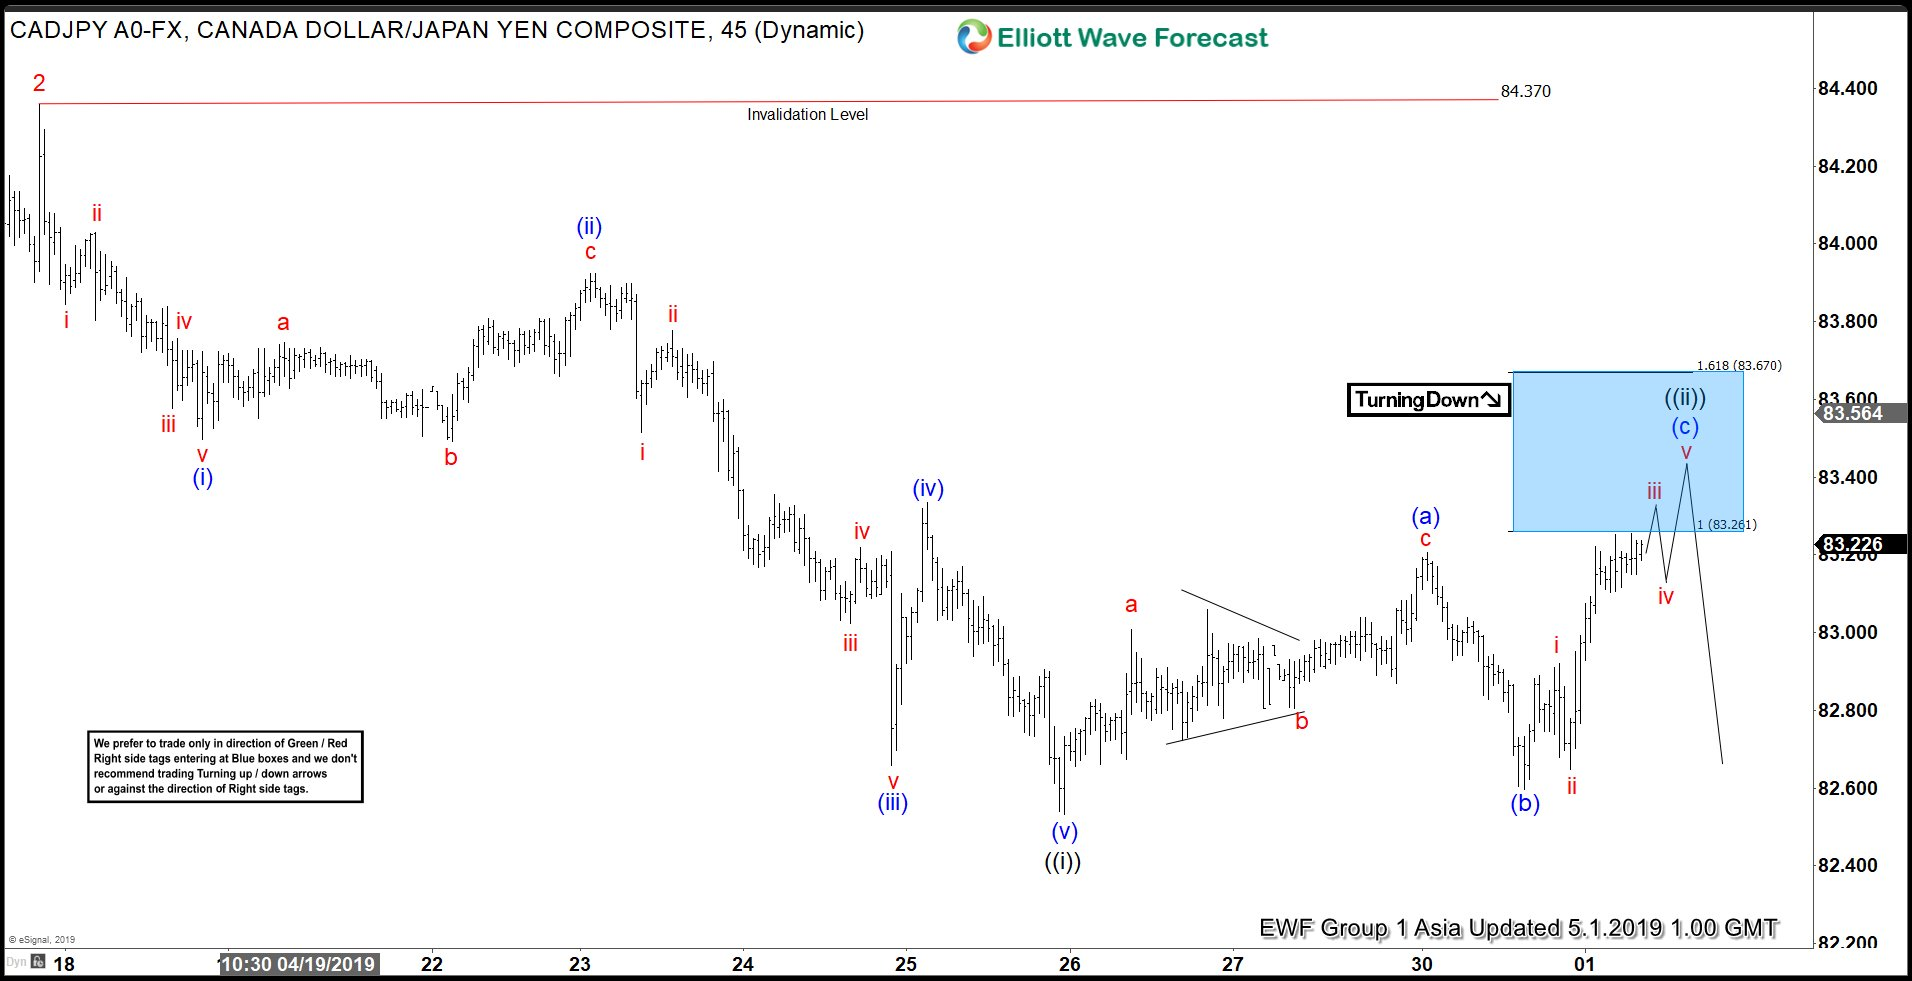 Elliot Wave View : Impulsive Decline in CADJPY